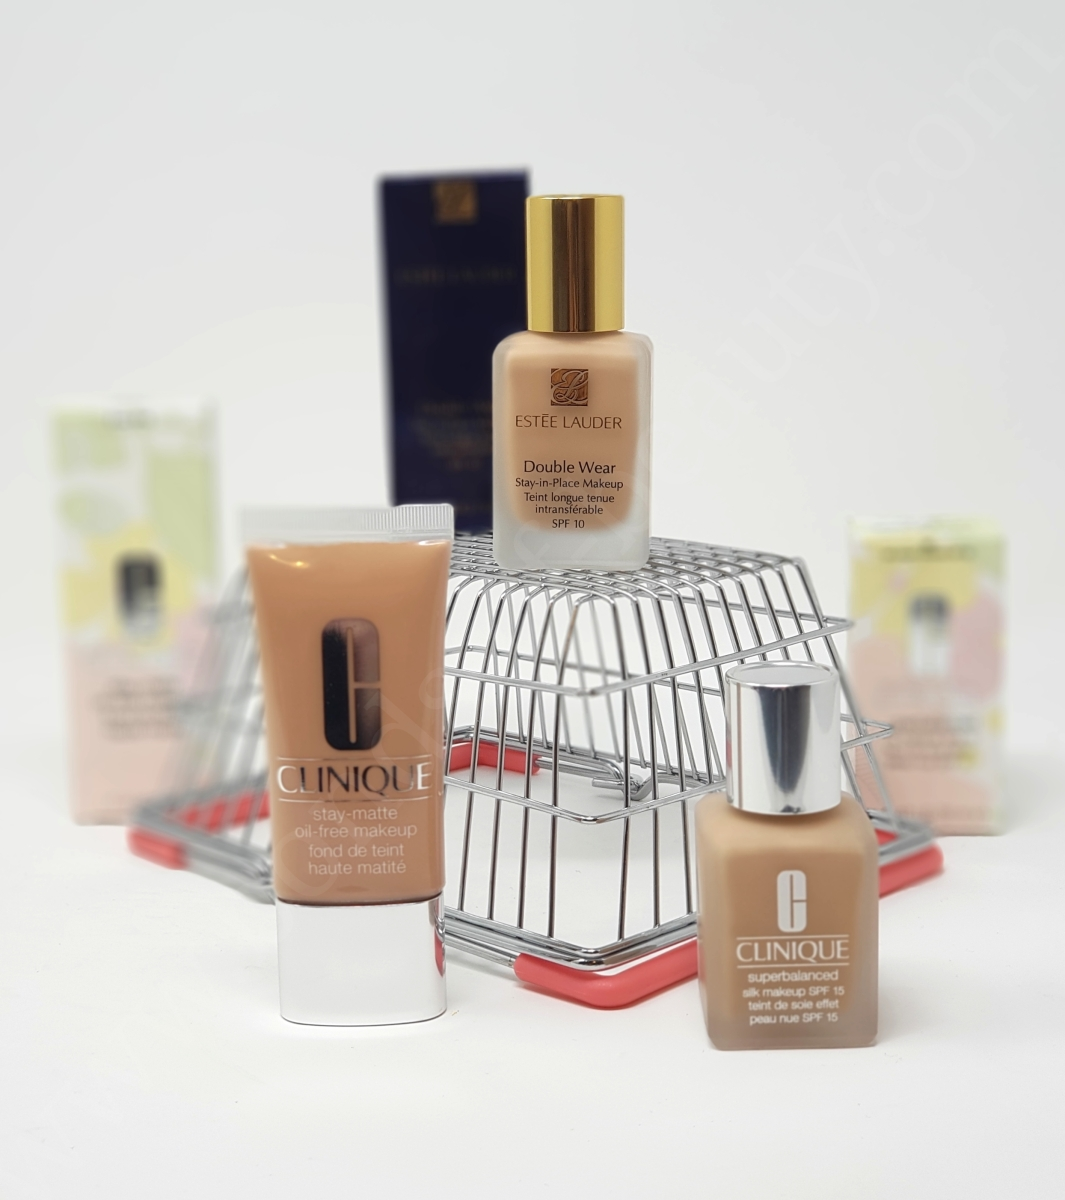 cb084cb0b Three Way Battle of Foundations: Estée Lauder Double Wear vs Clinique  Superbalanced Silk vs Clinique Stay-Matte Oil-Free. In-depth Review and  Ingredient ...